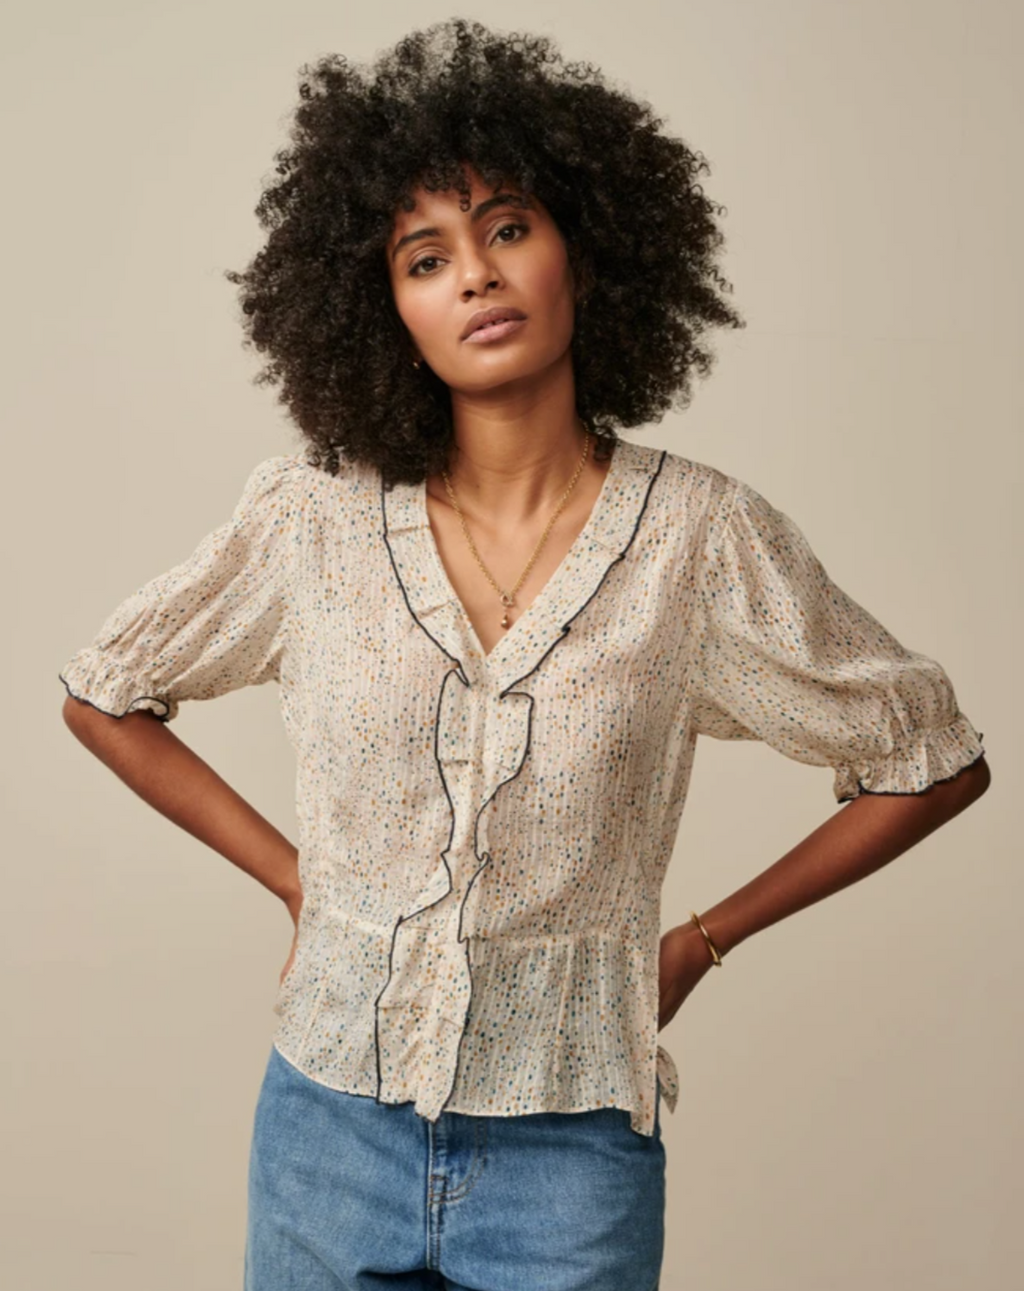 Flecked with a hand-drawn polka dot print, this HESSE blouse brings casual-chic to the table. A retro-slant look crafted from a viscose/silk blend and packed with details such as puffed sleeves, gathered yoke, shaping darts to frame the waistline, and a frilled V neckline.